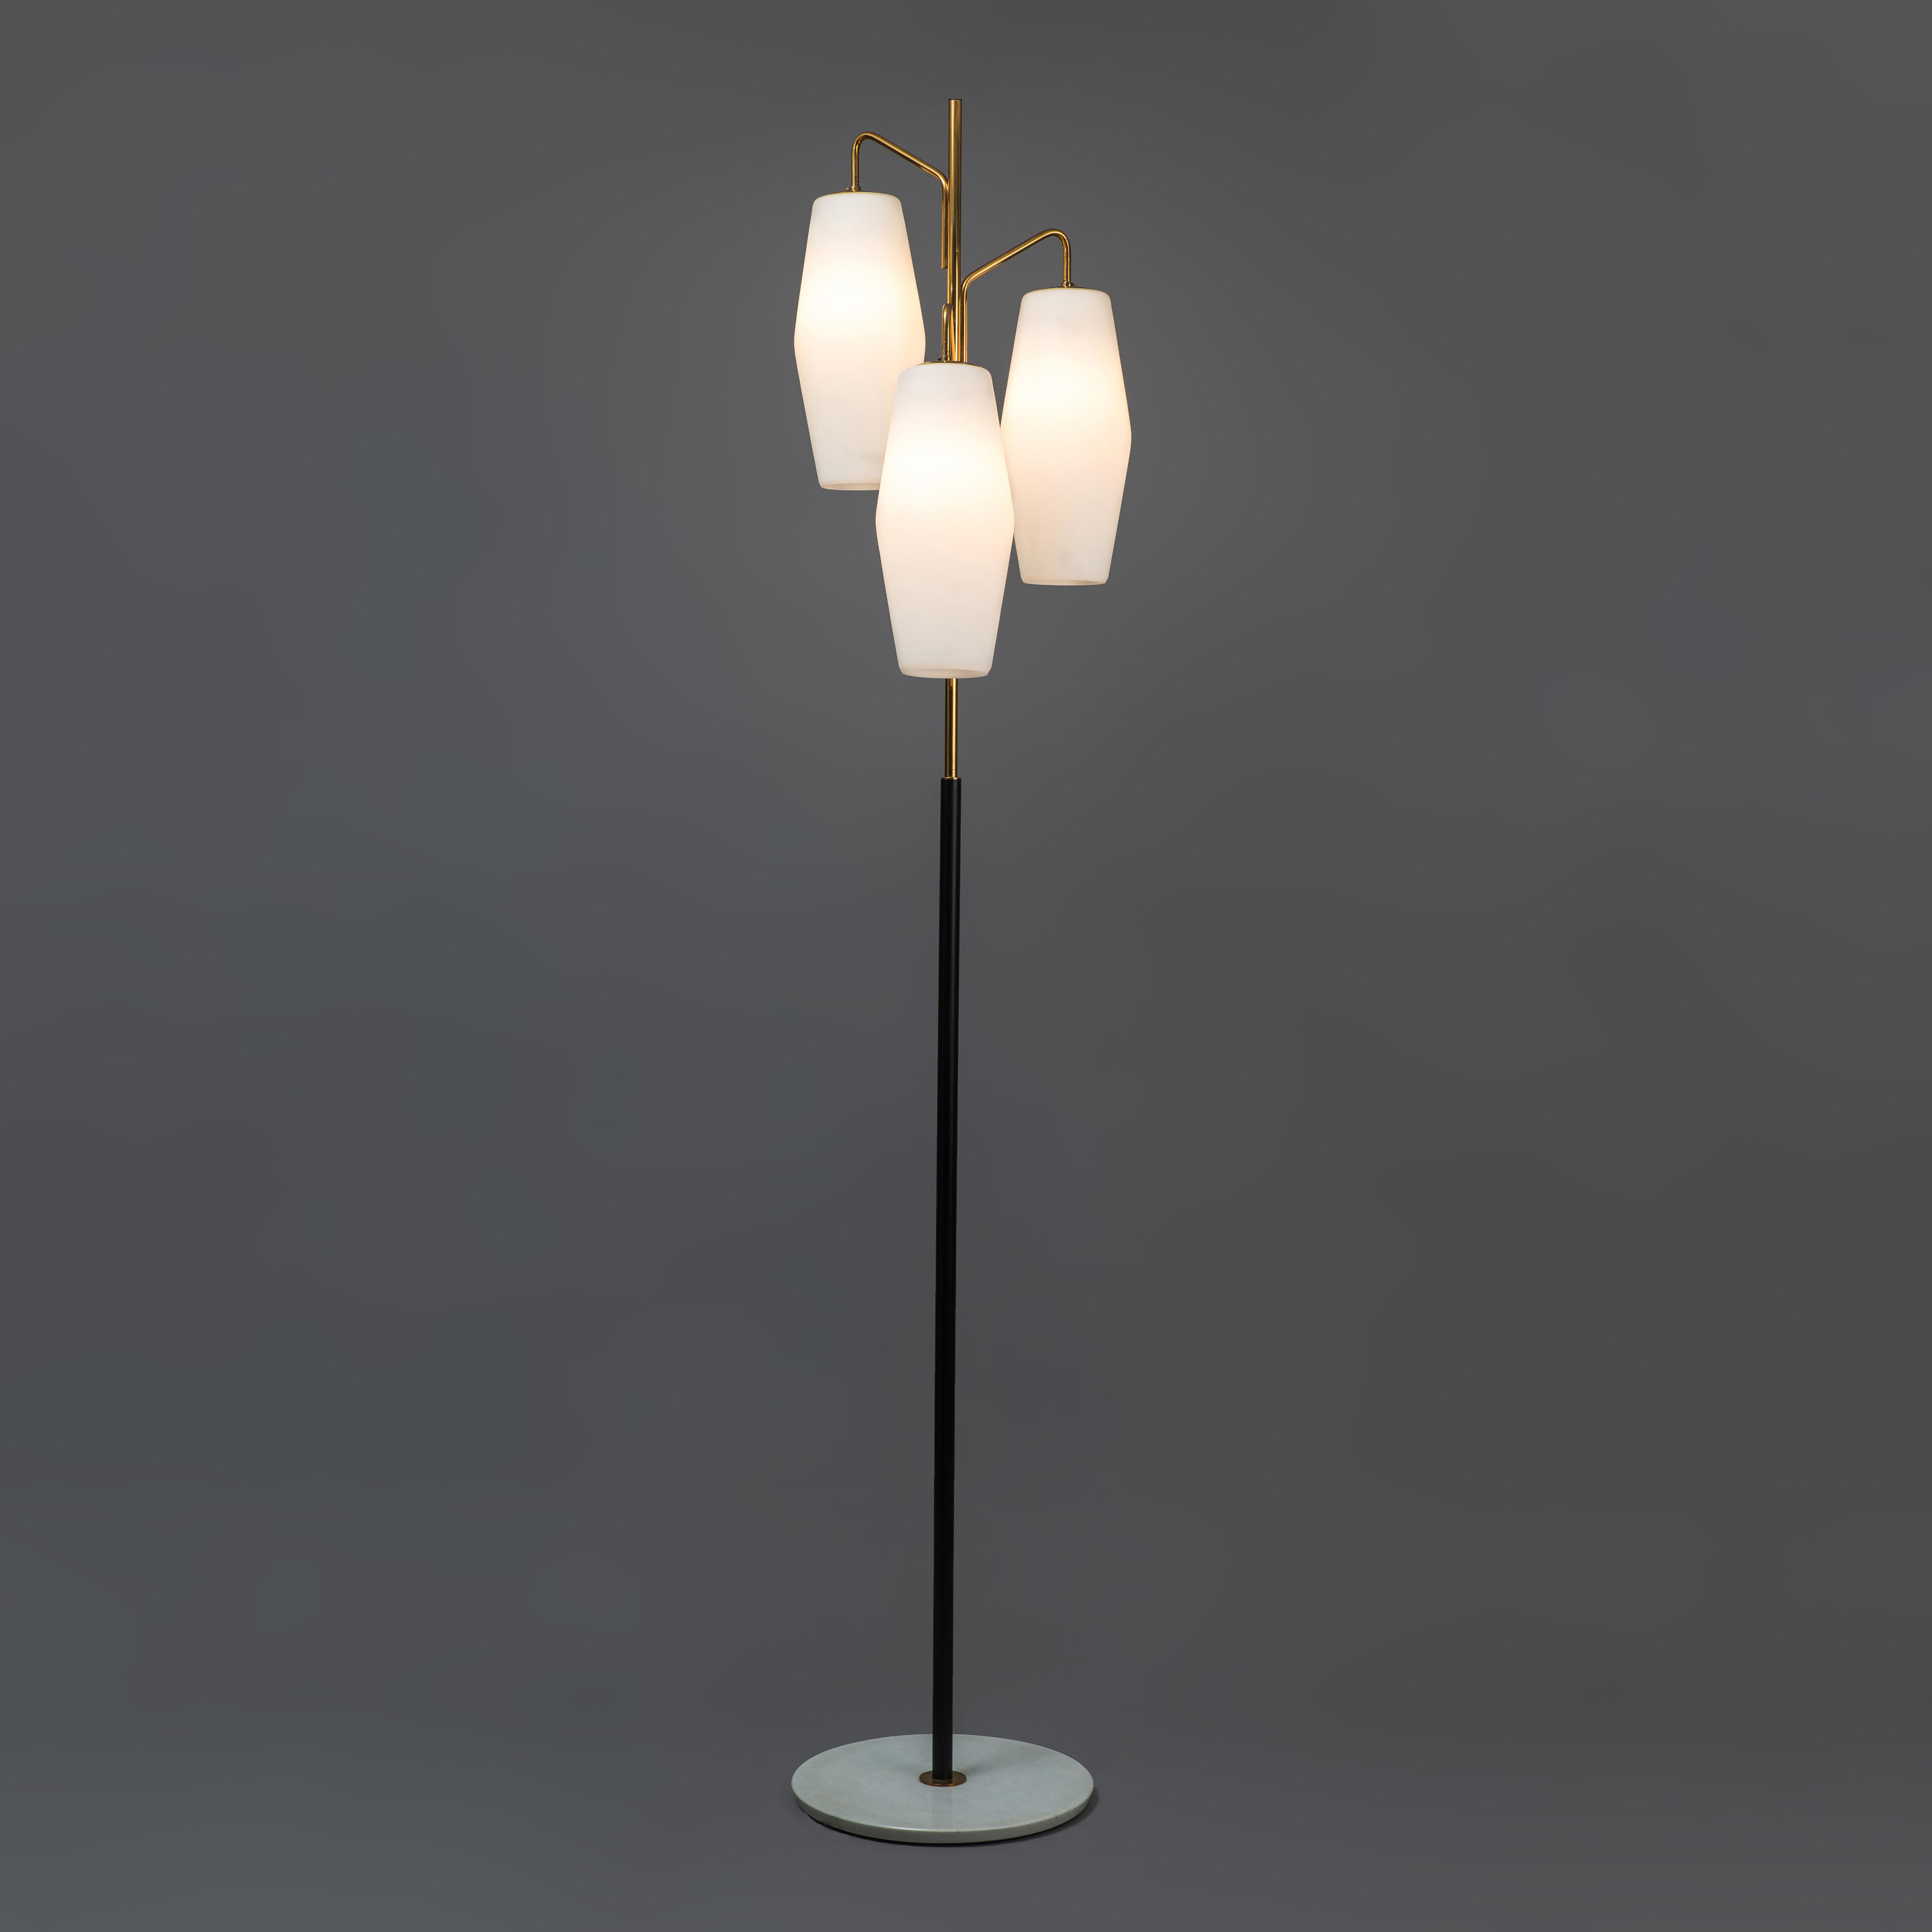 Floor Lamp, model 4052 by Stilnovo, stamped | soyun k.